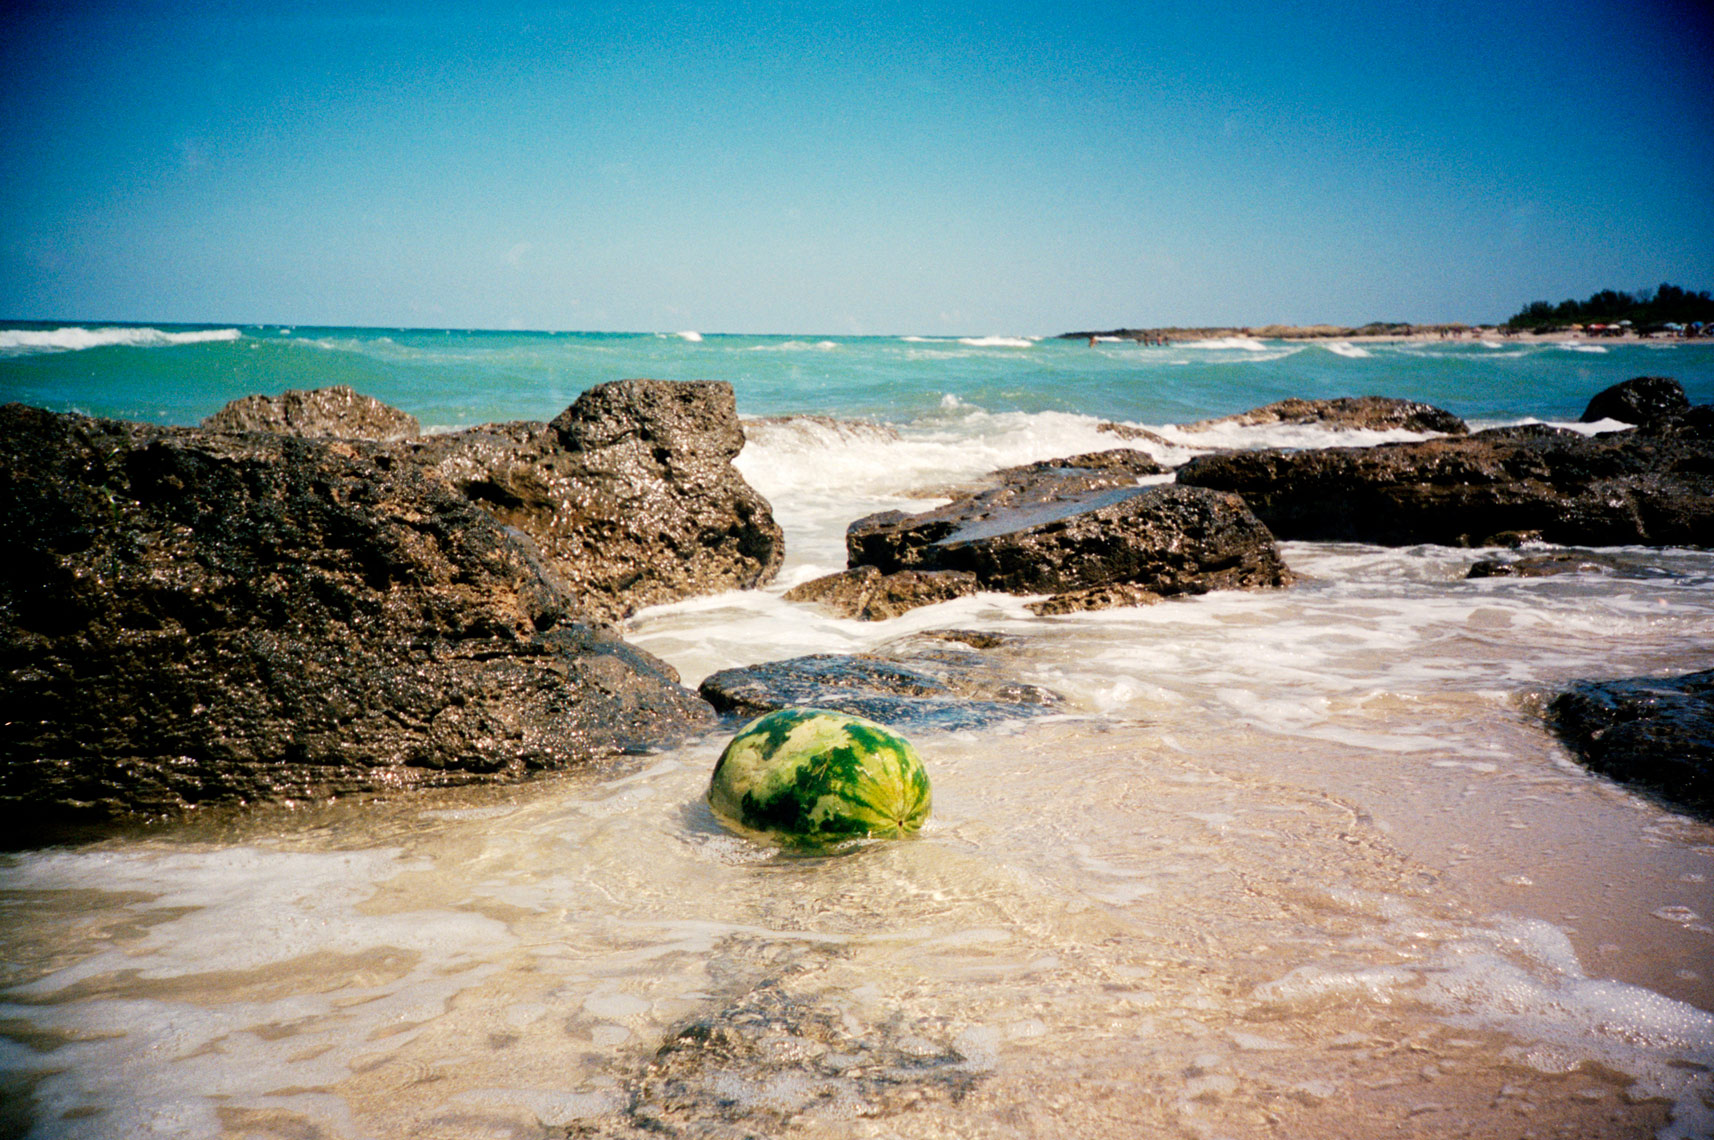 watermelon floating in sea off Adriatic Coast Italy